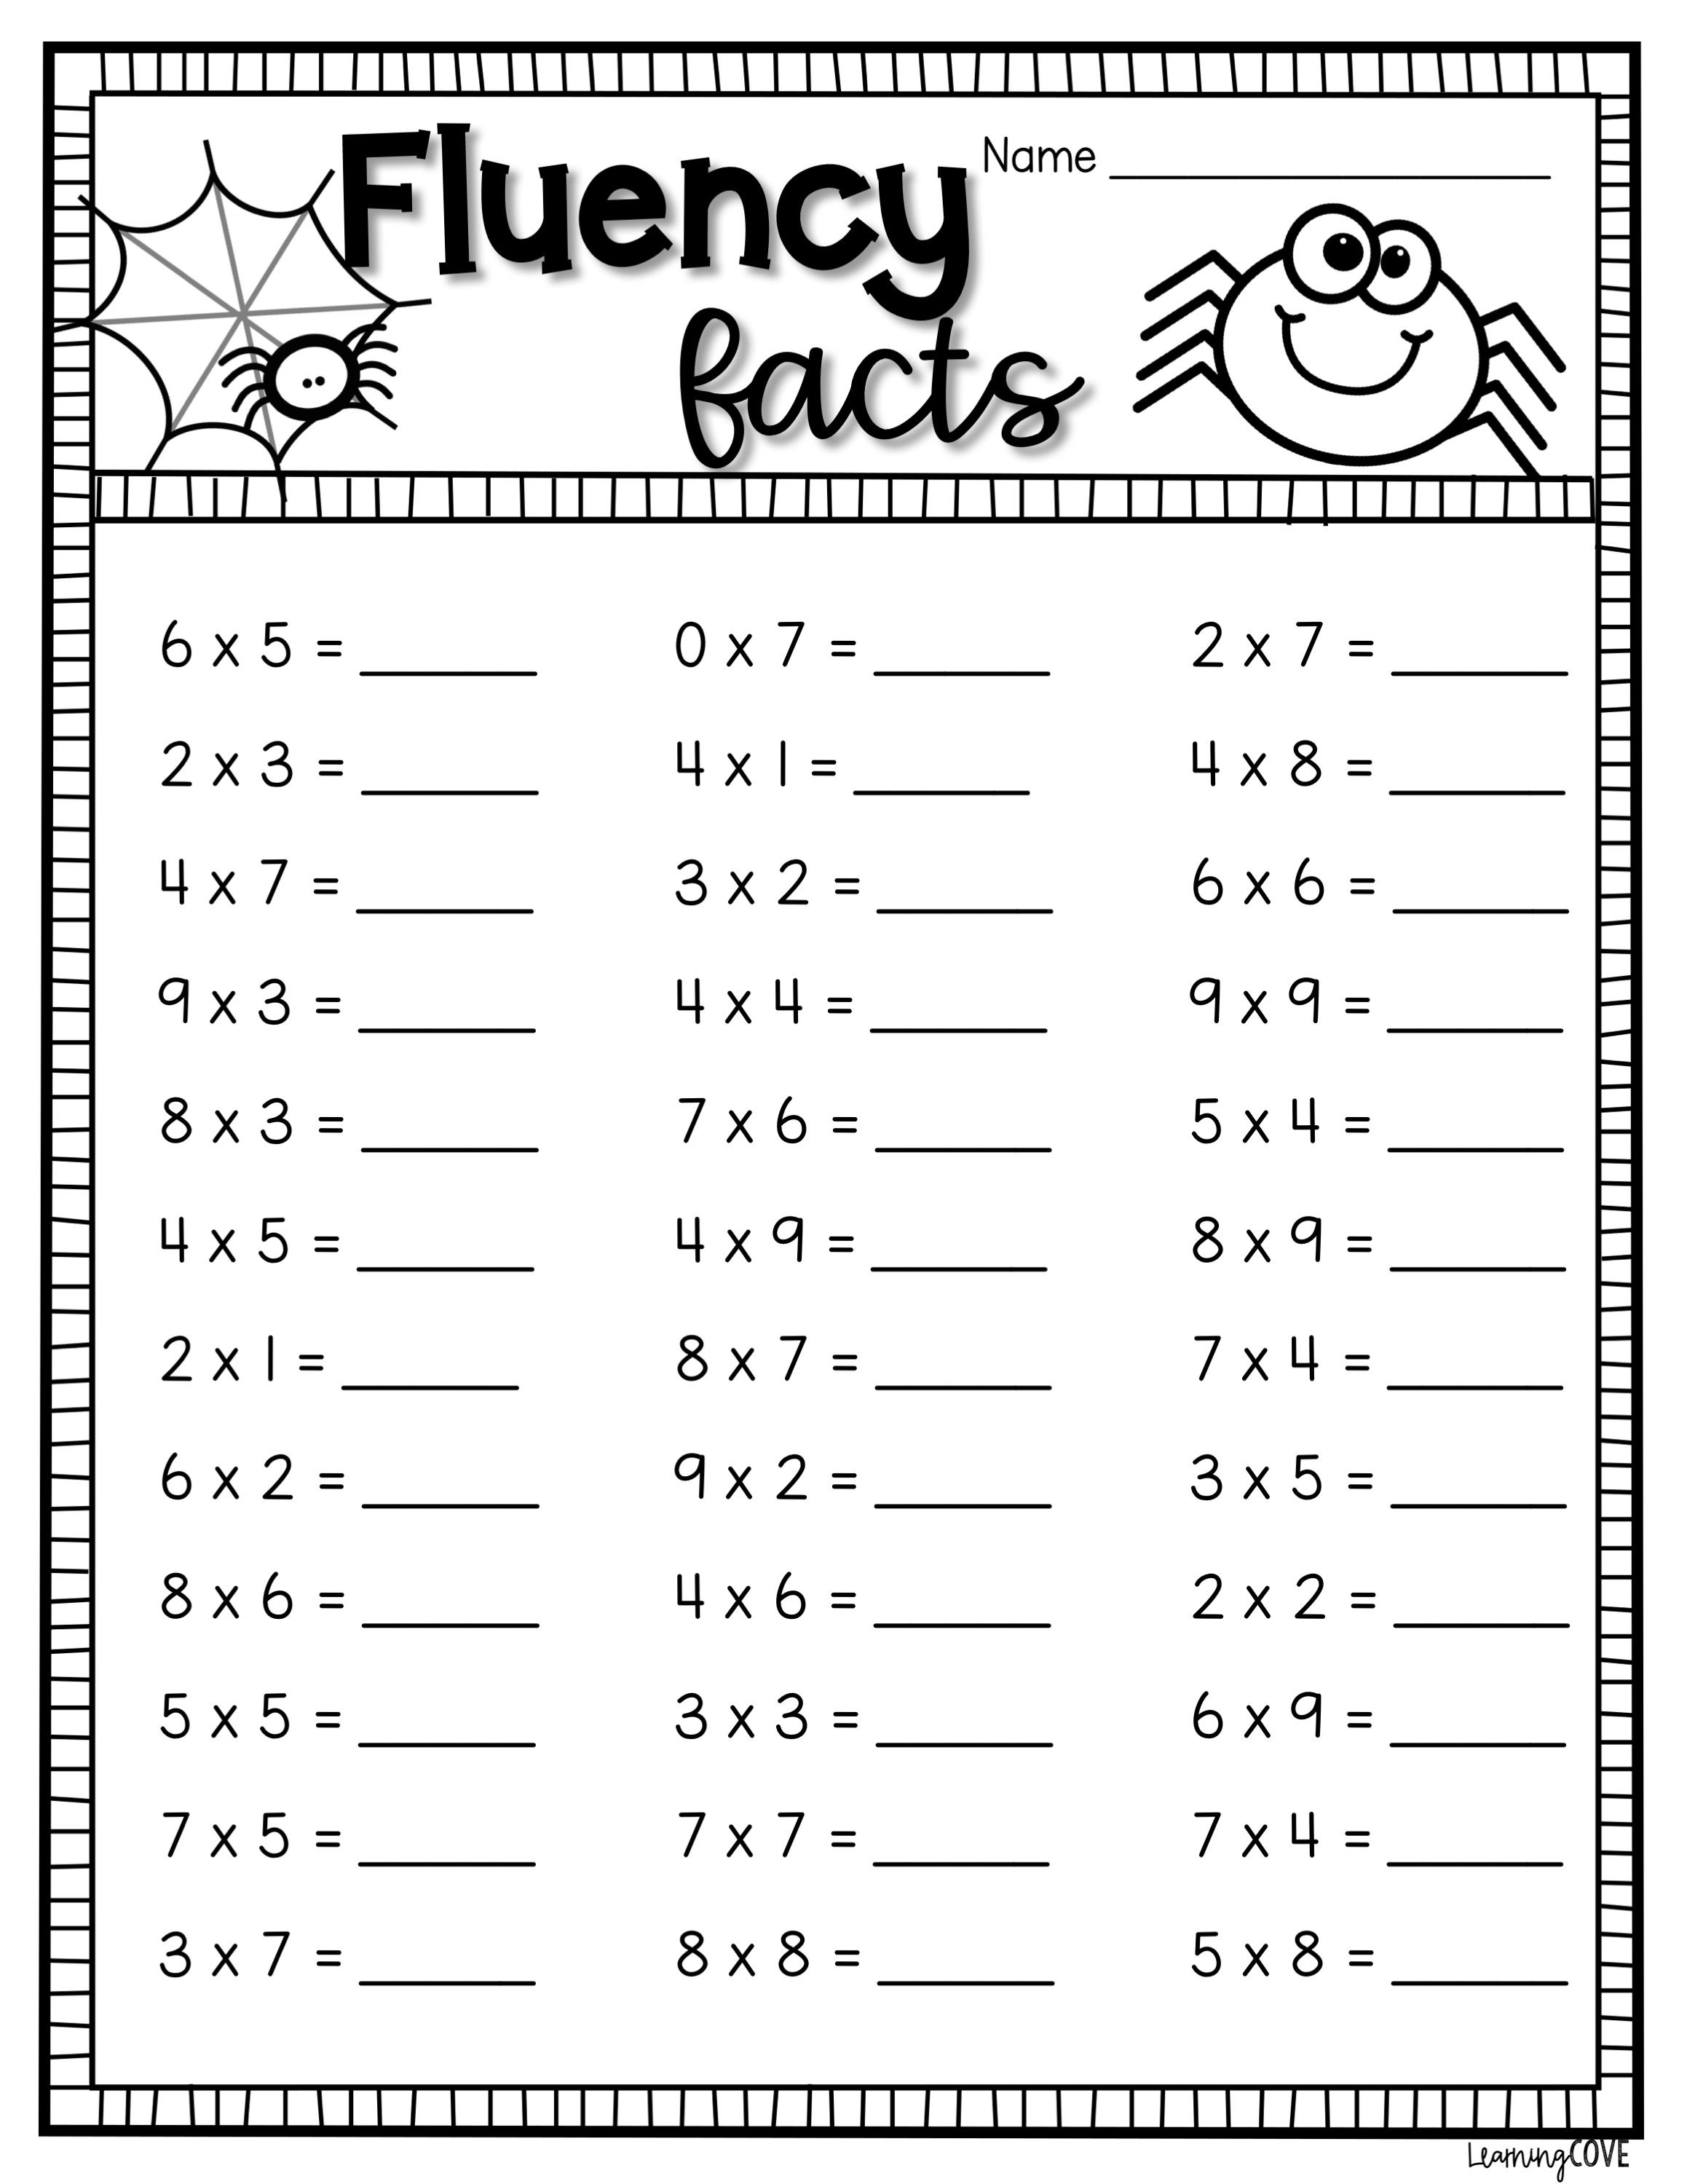 Halloween Math Multiplication Worksheets In 2020 Math Addition Worksheets Kids Math Worksheets Math Fact Worksheets